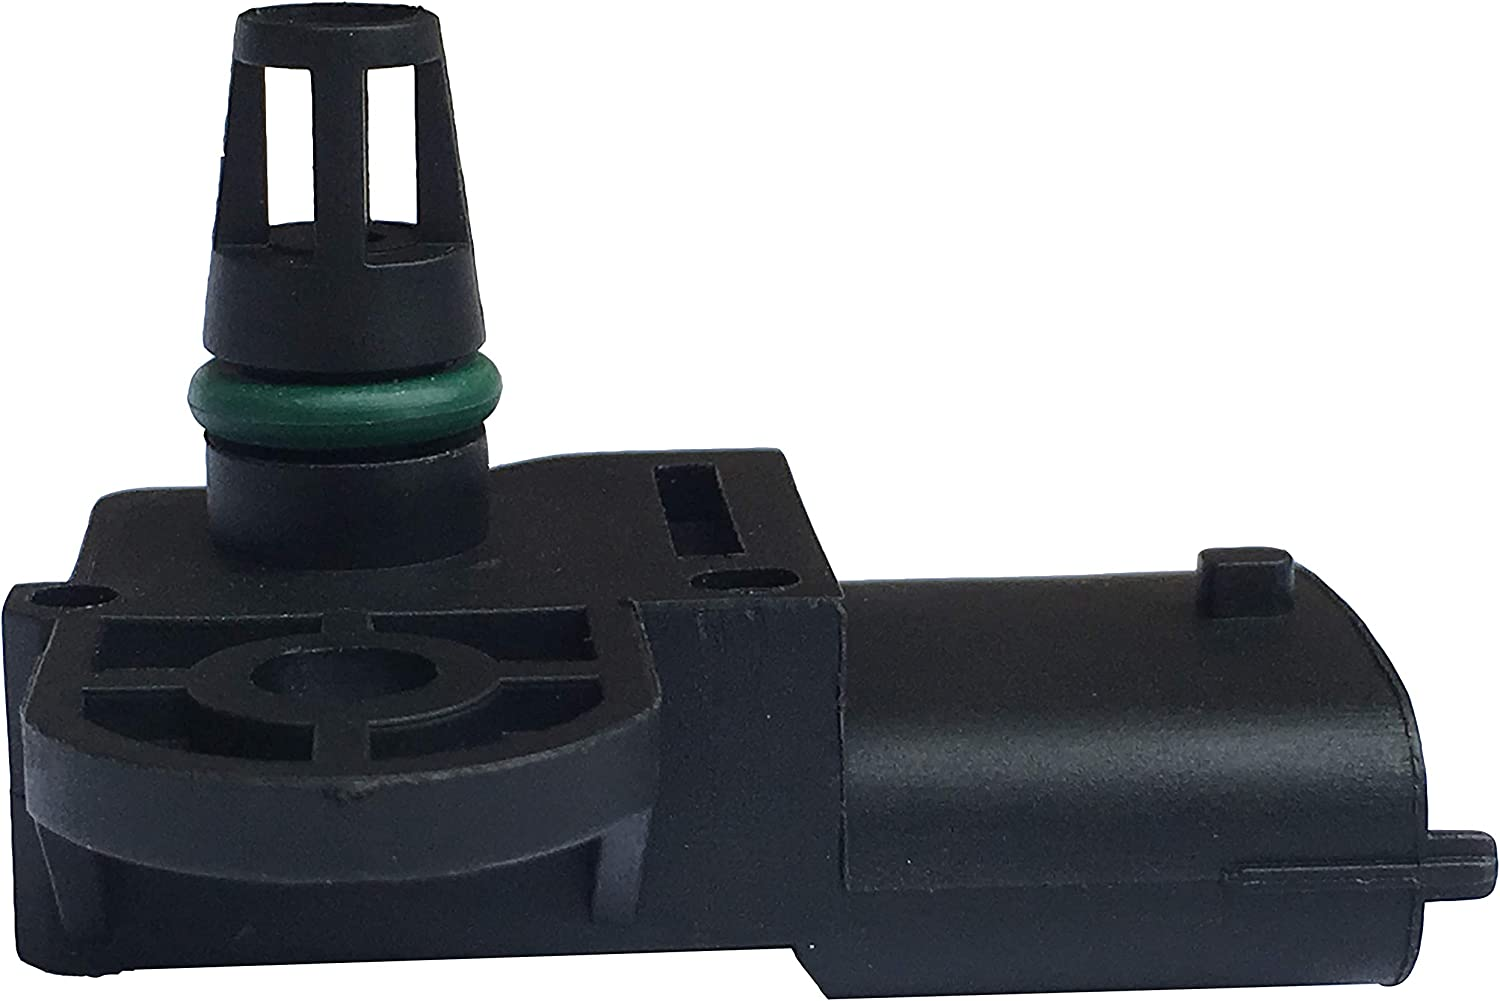 46533518,46553045 for CHEVROLET 2006-2008 MAP014 Manifold Absolute Pressure MAP Sensor OE# 93313154